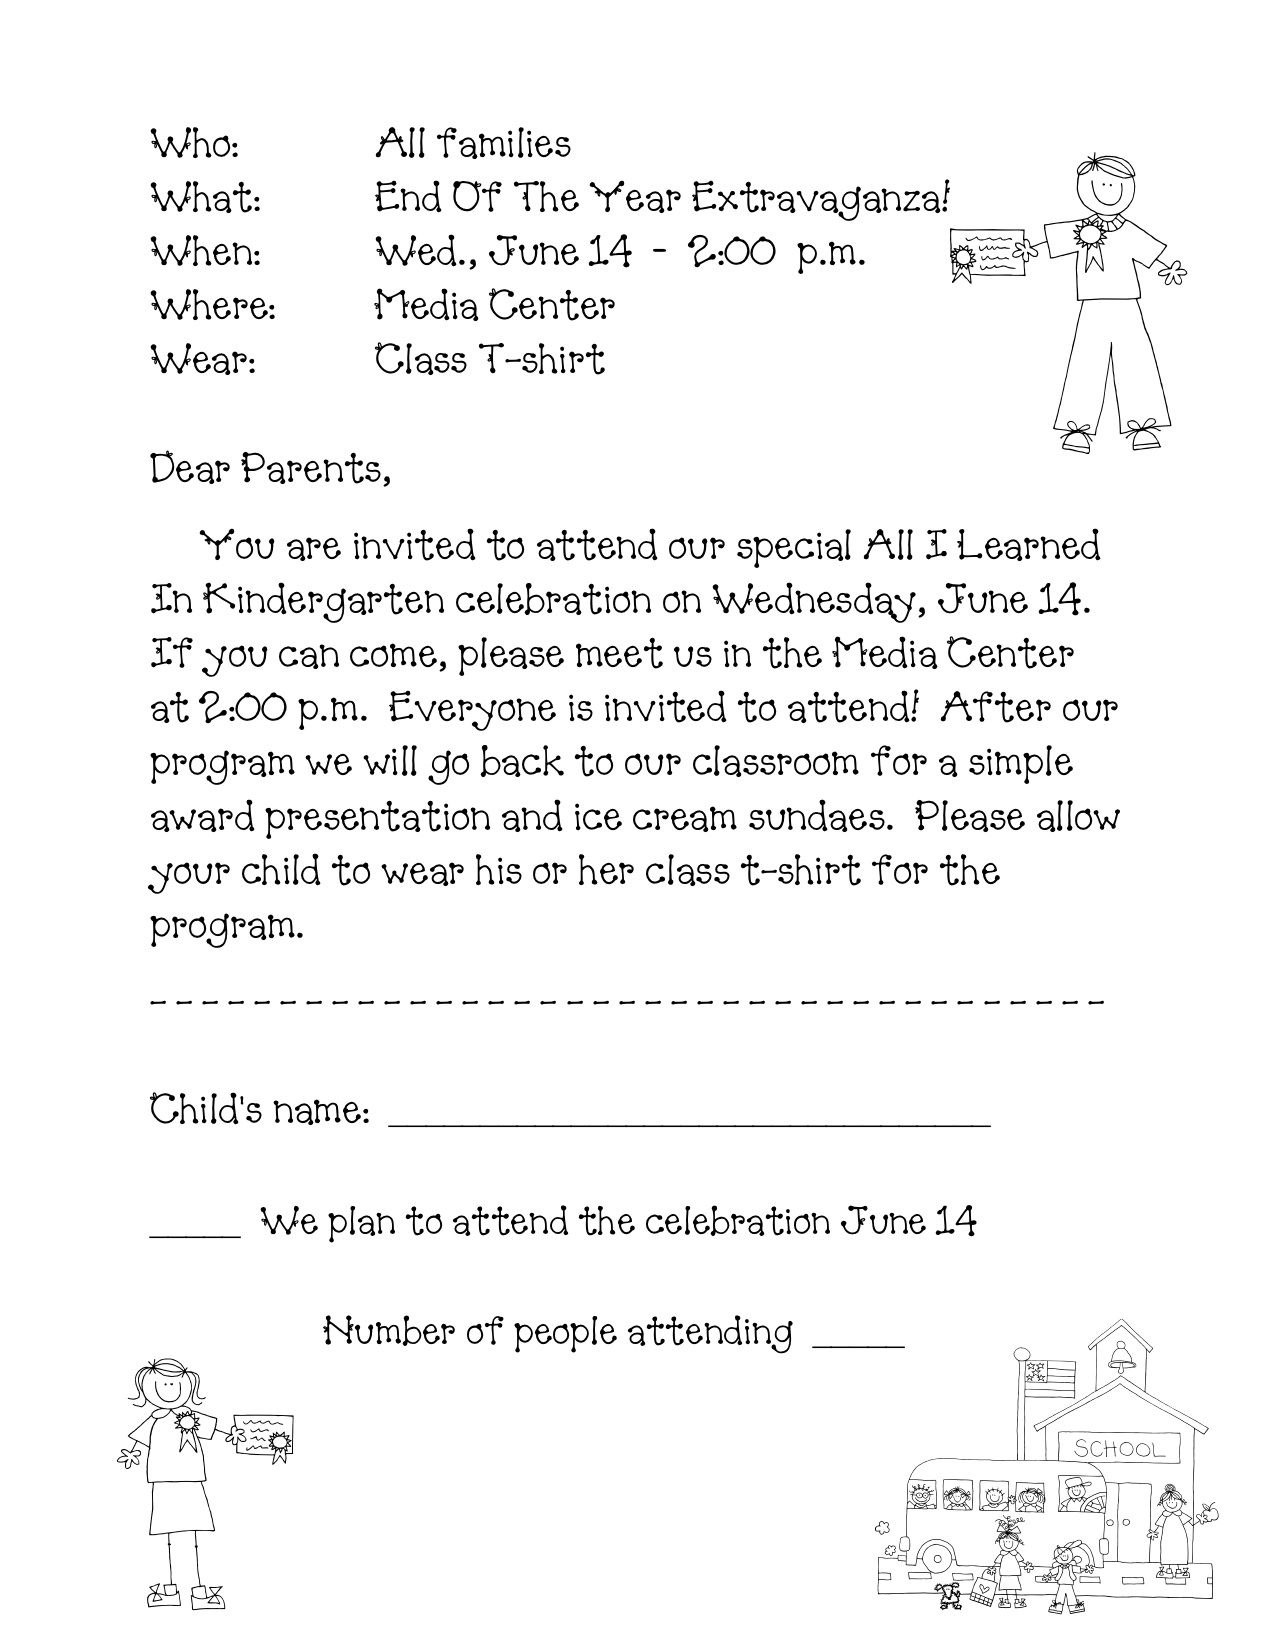 classroom party letter to parents template example-preschool graduation program sample Google Search 19-t